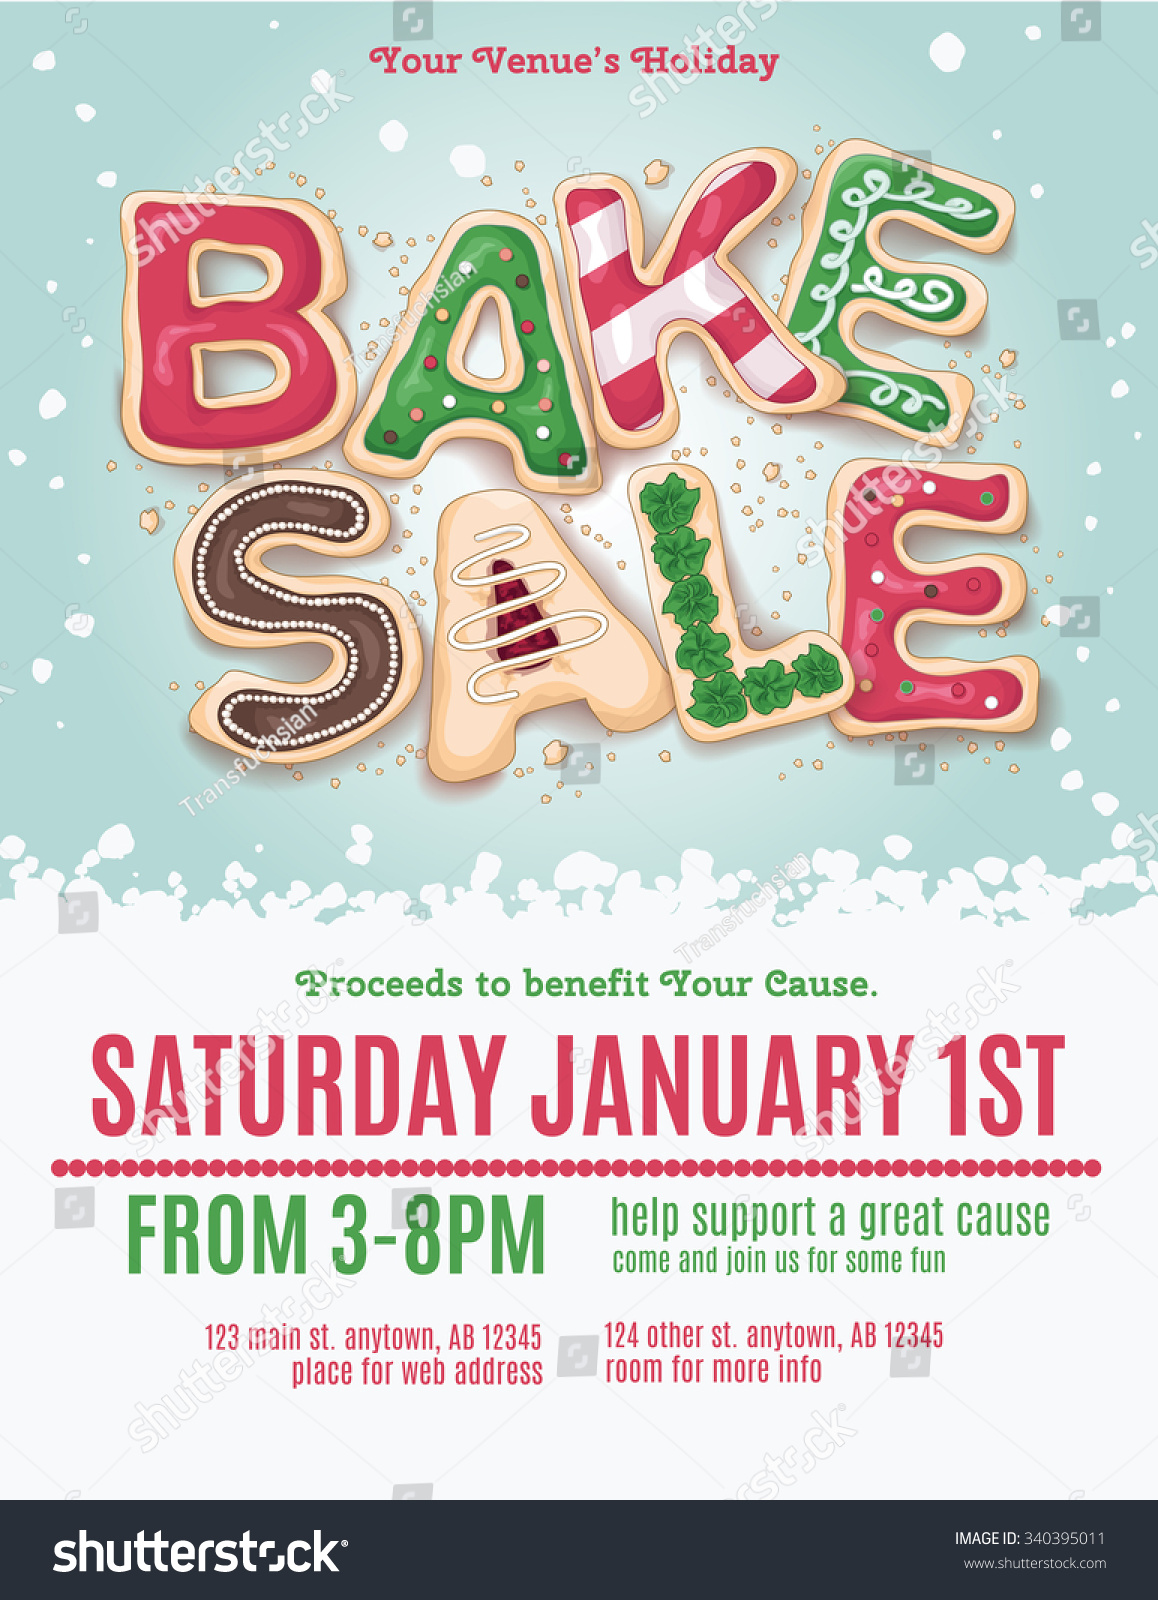 christmas bake sale ideas